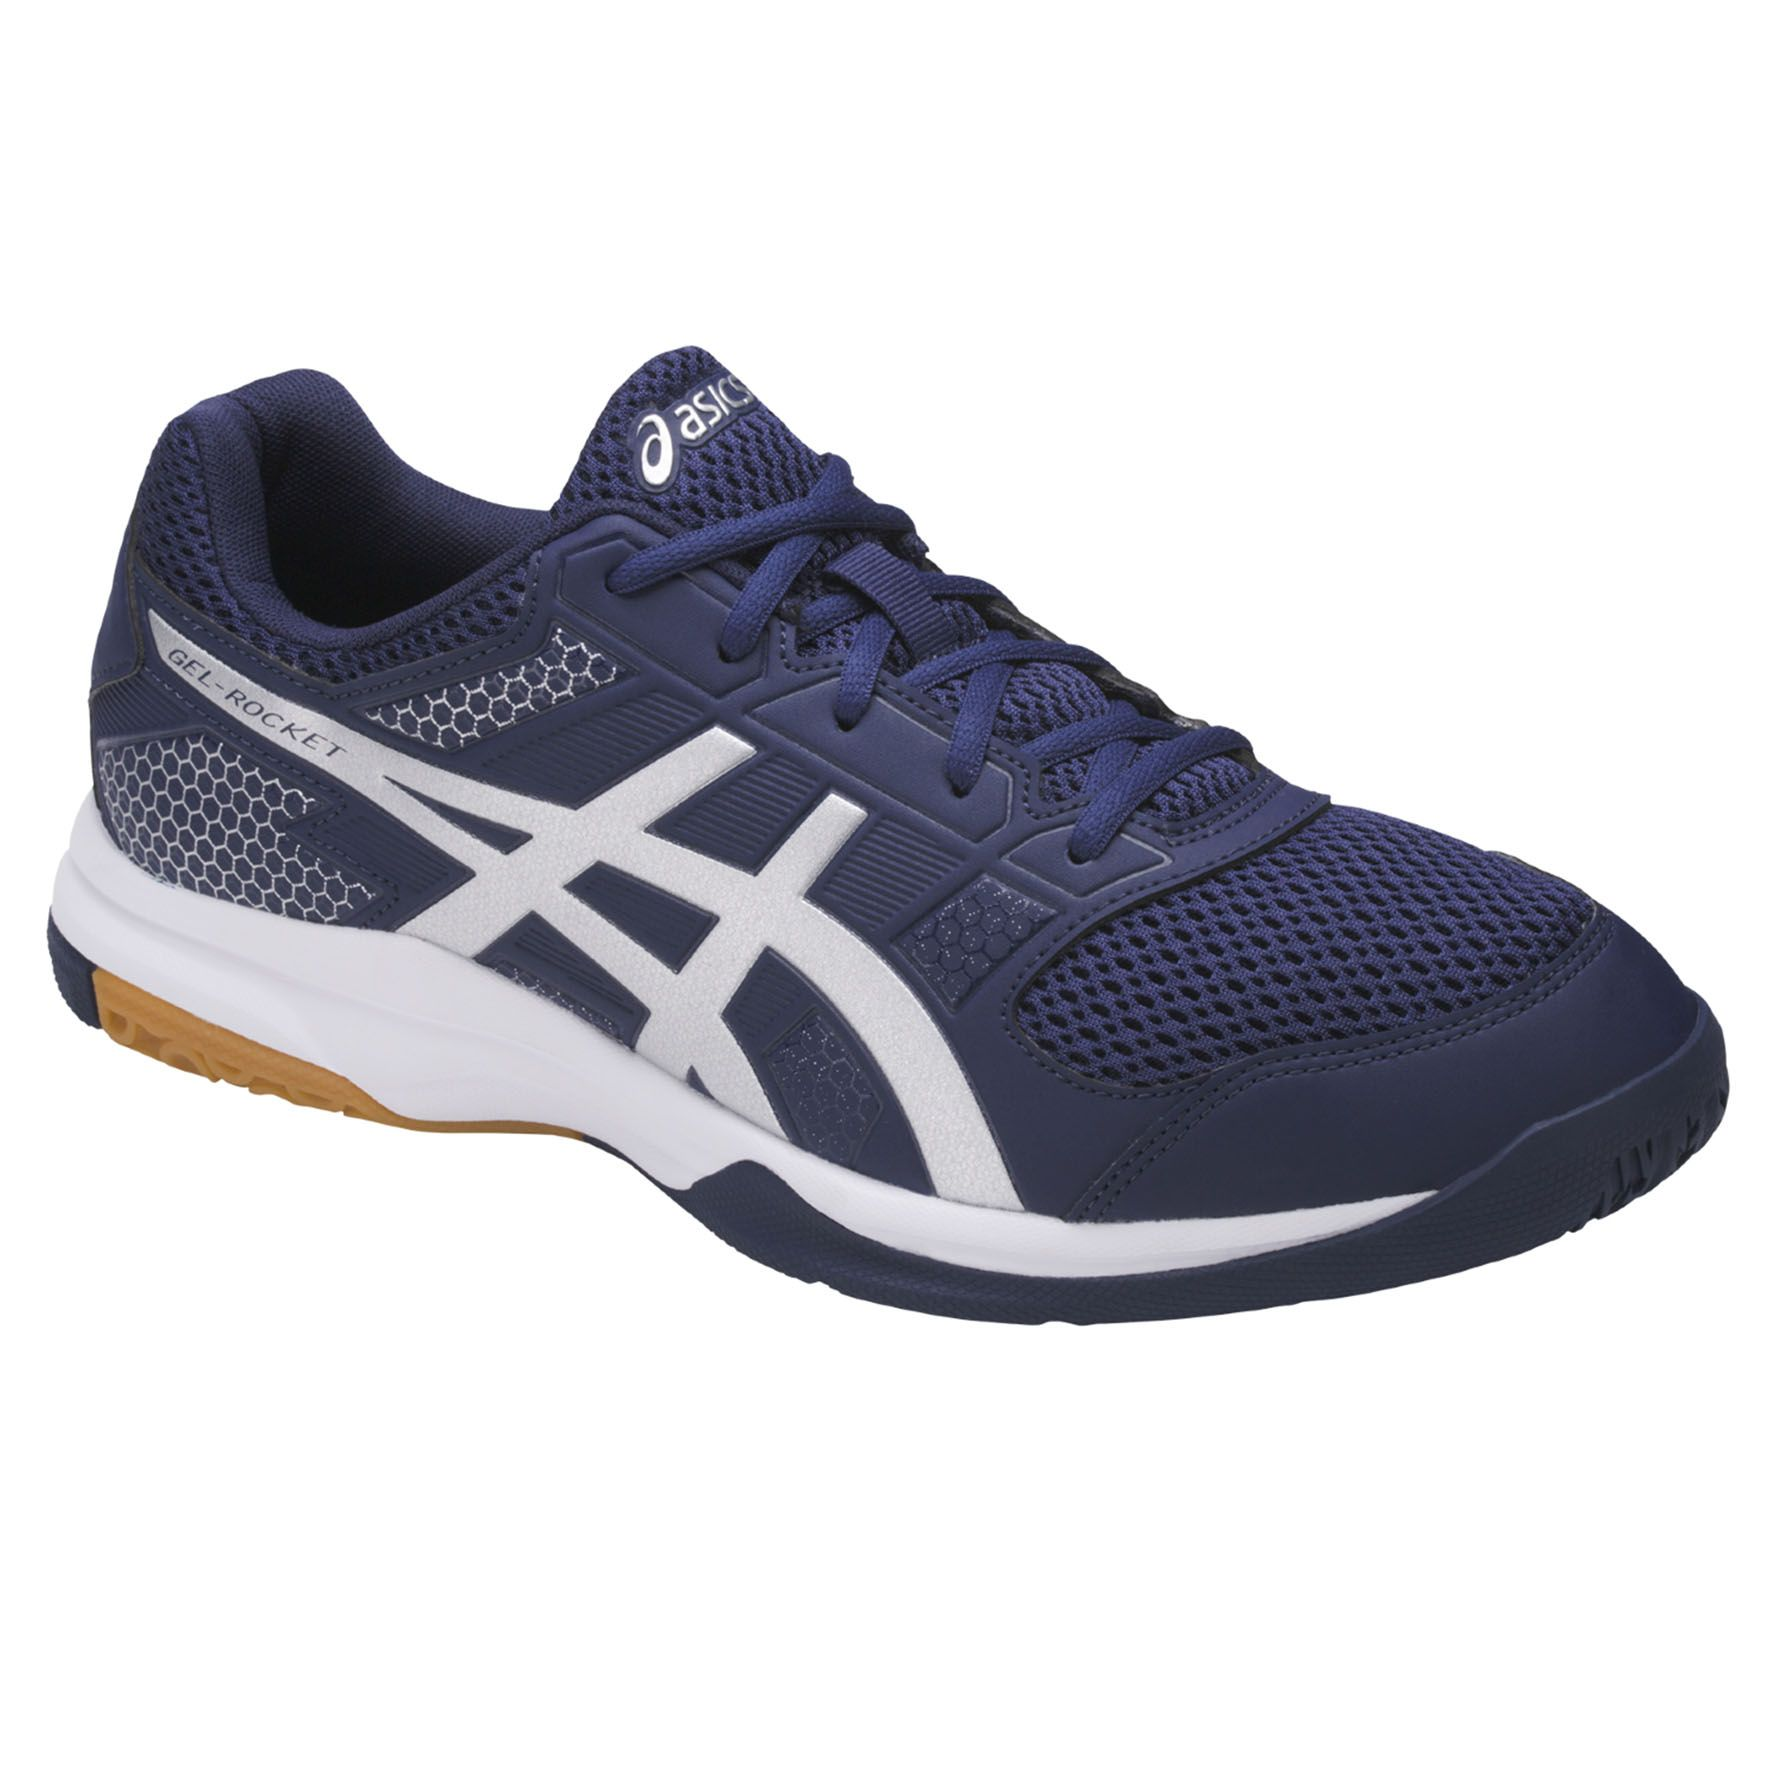 Asics Mens Shoes 84